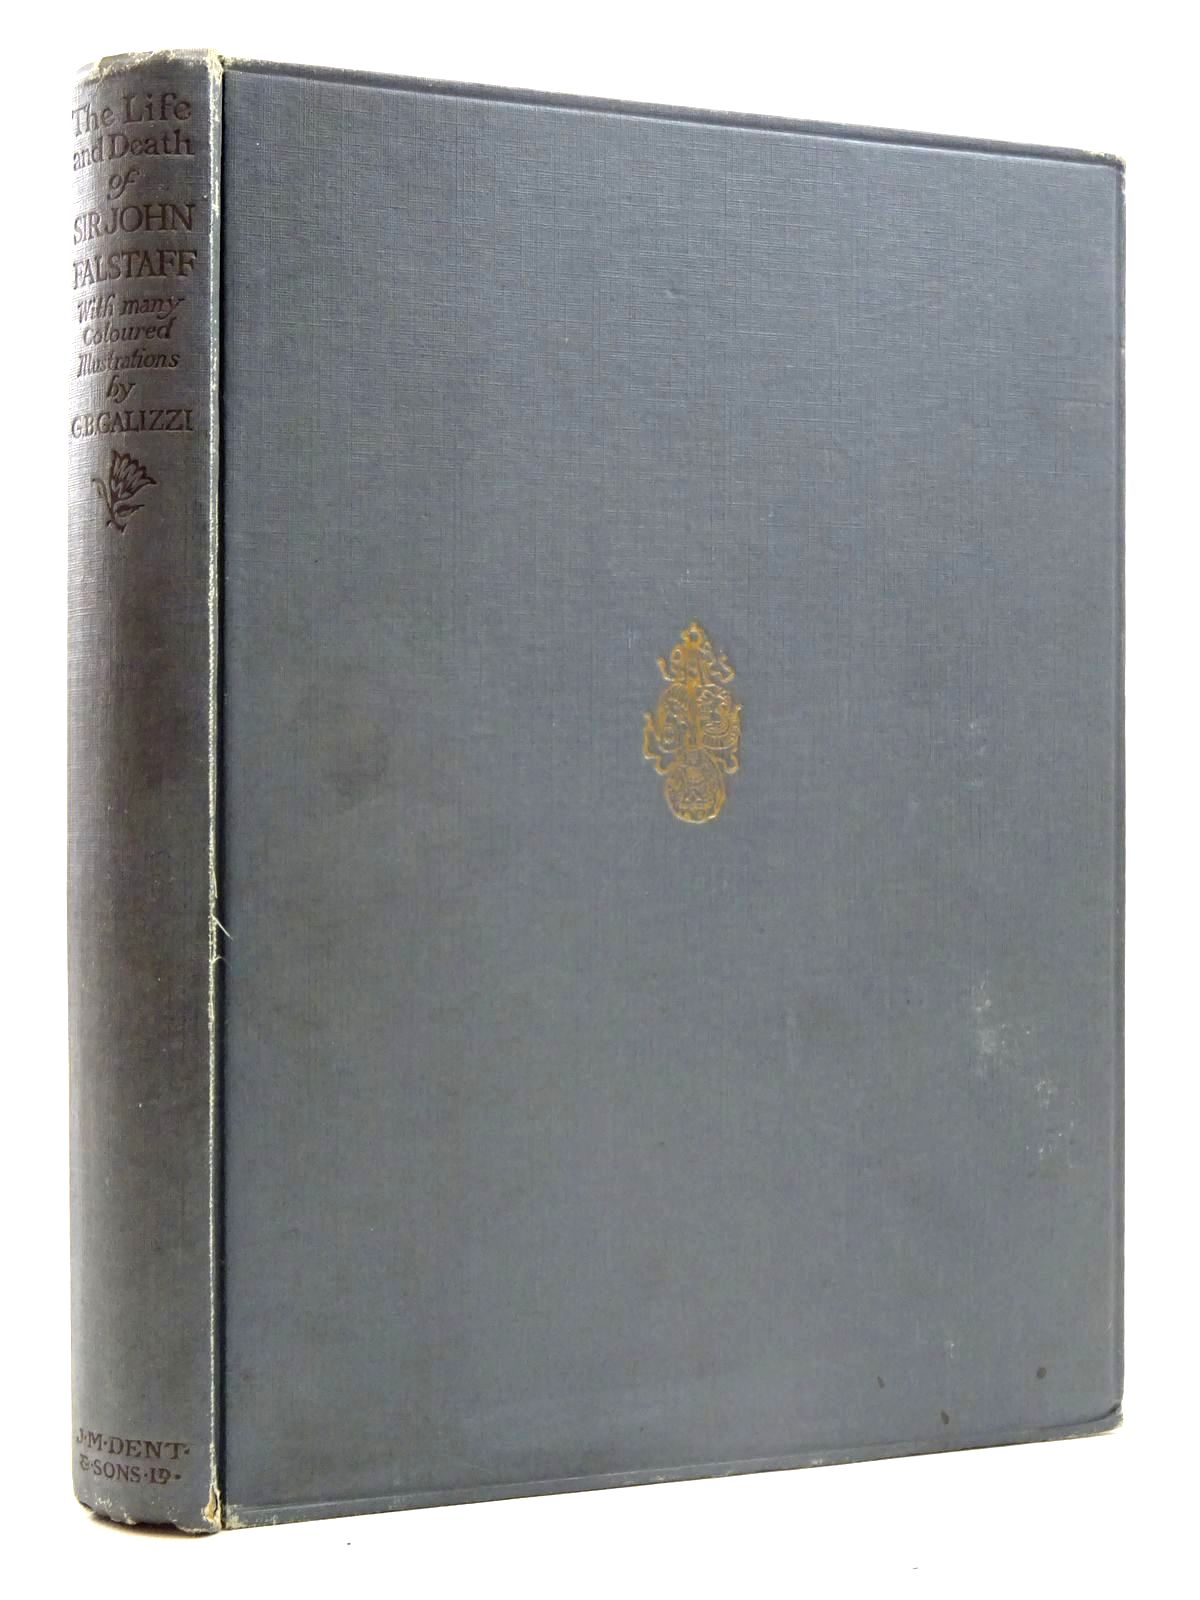 Photo of THE LIFE & DEATH OF SIR JOHN FALSTAFF written by Shakespeare, William<br />Radford, George illustrated by Galizzi, G.B. published by J.M. Dent & Sons Ltd. (STOCK CODE: 1816228)  for sale by Stella & Rose's Books